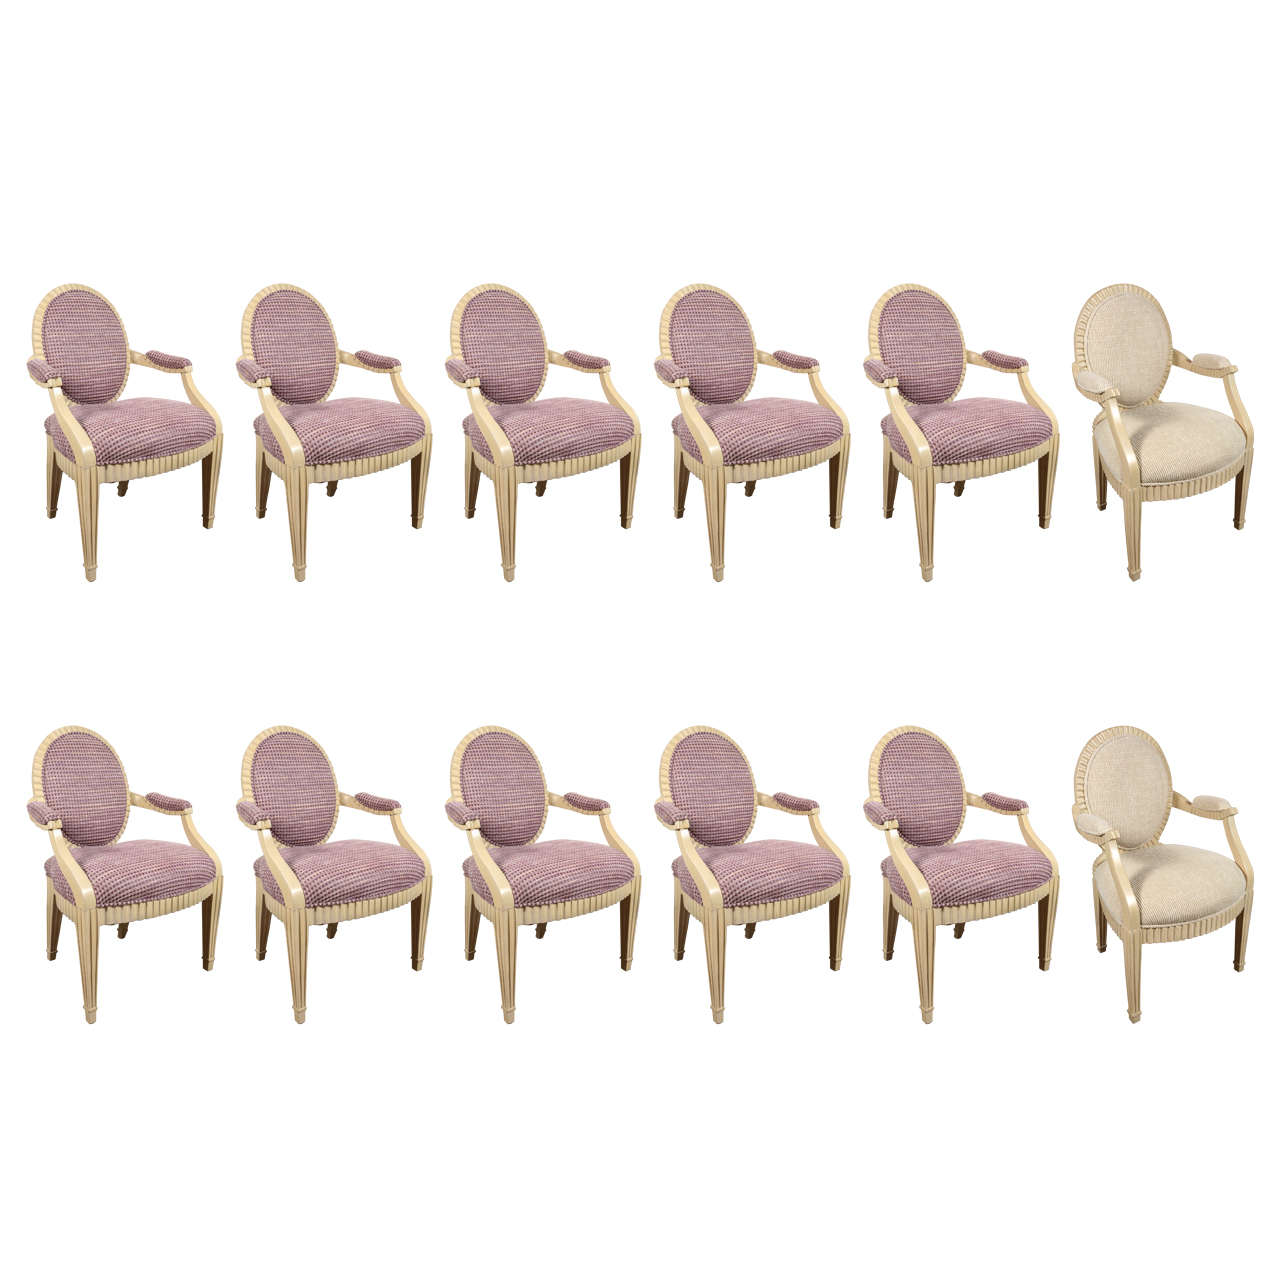 12 Dining Chairs by Steve Chase